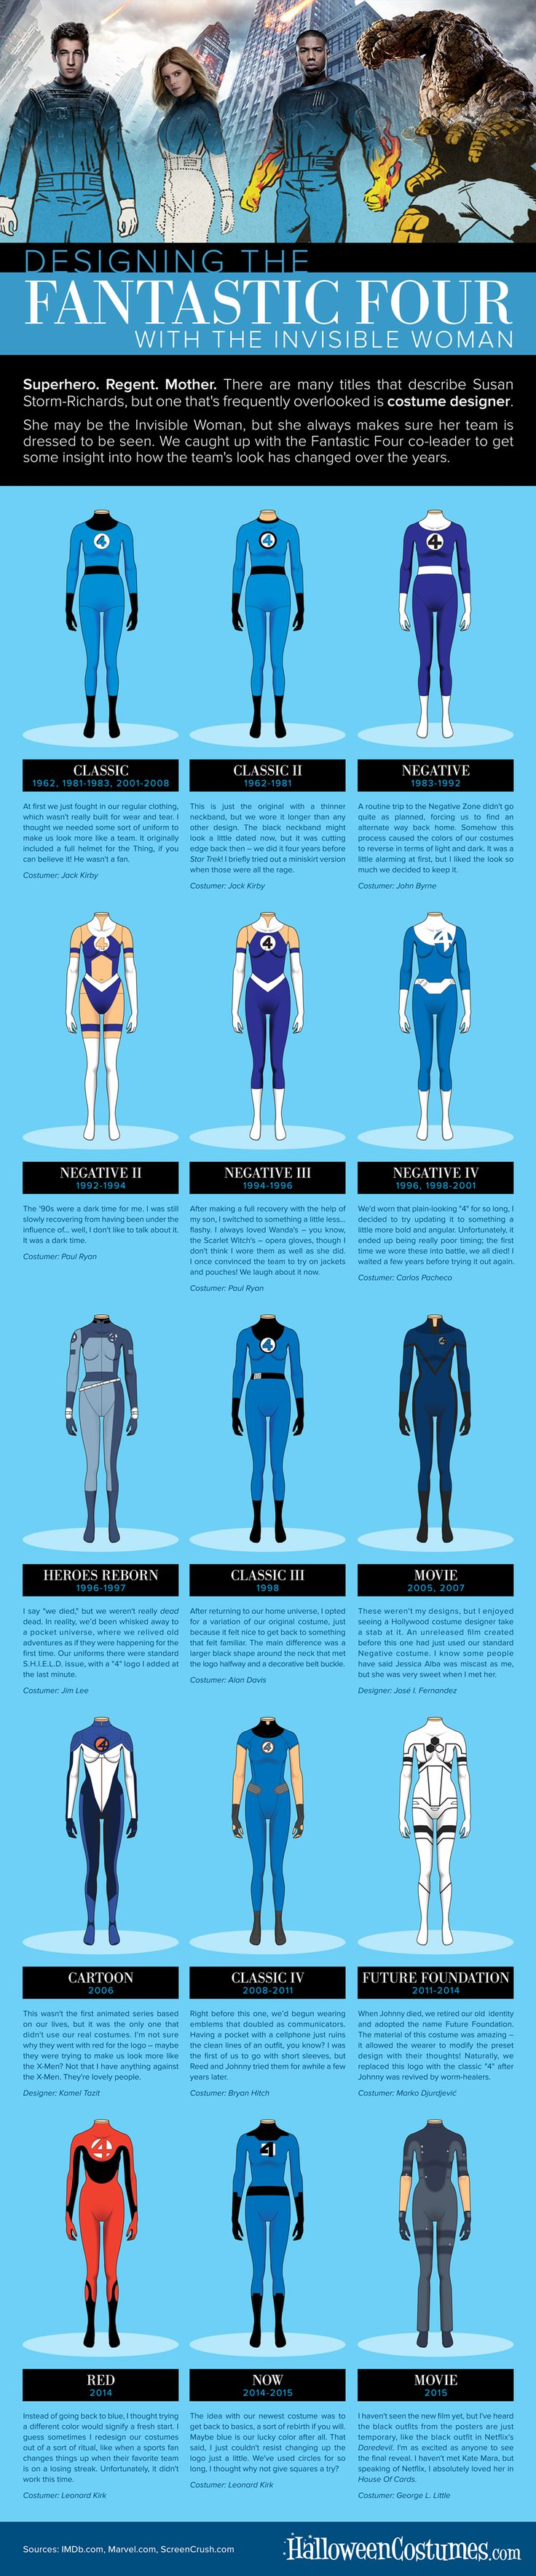 Fantastic Four Costume Evolution Infographic